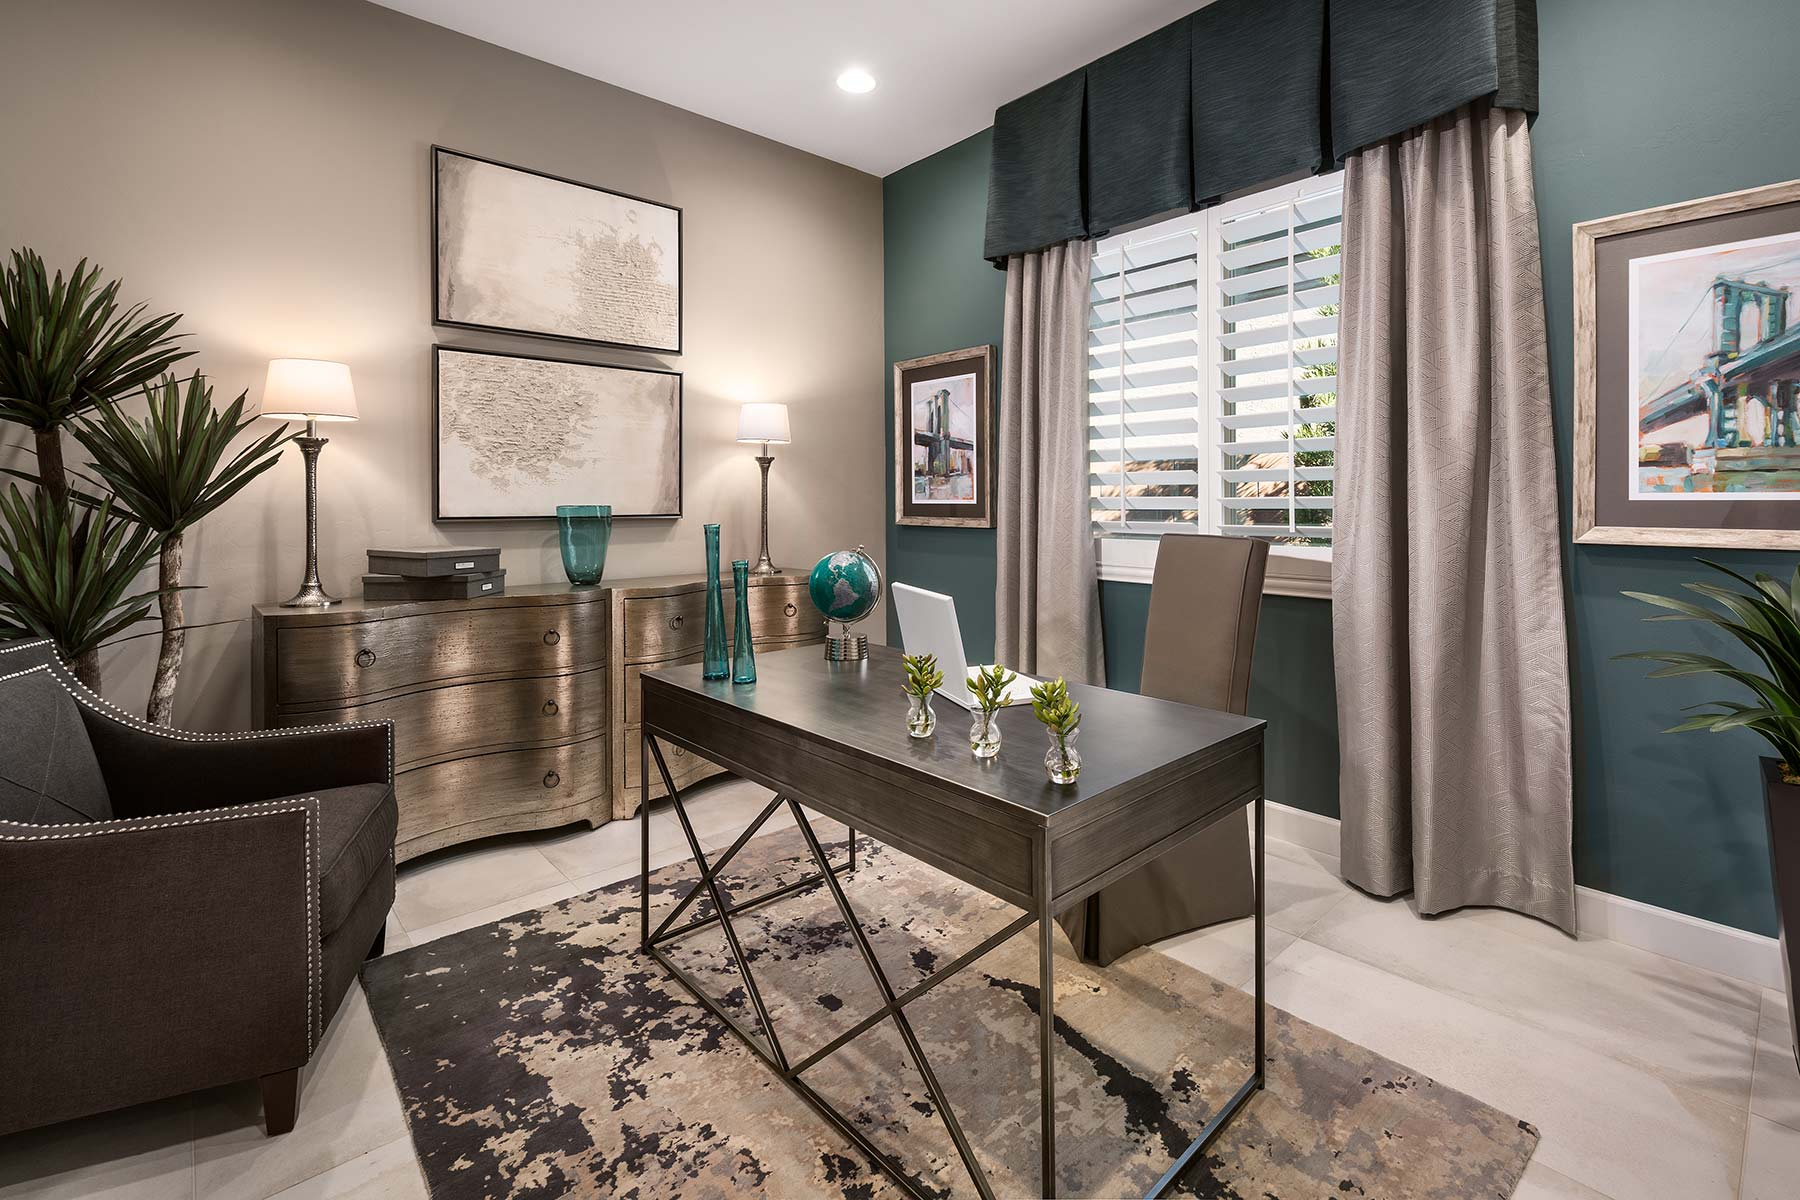 Strata Plan Study Room at Alterra at Vistoso Trails in Oro Valley Arizona by Mattamy Homes